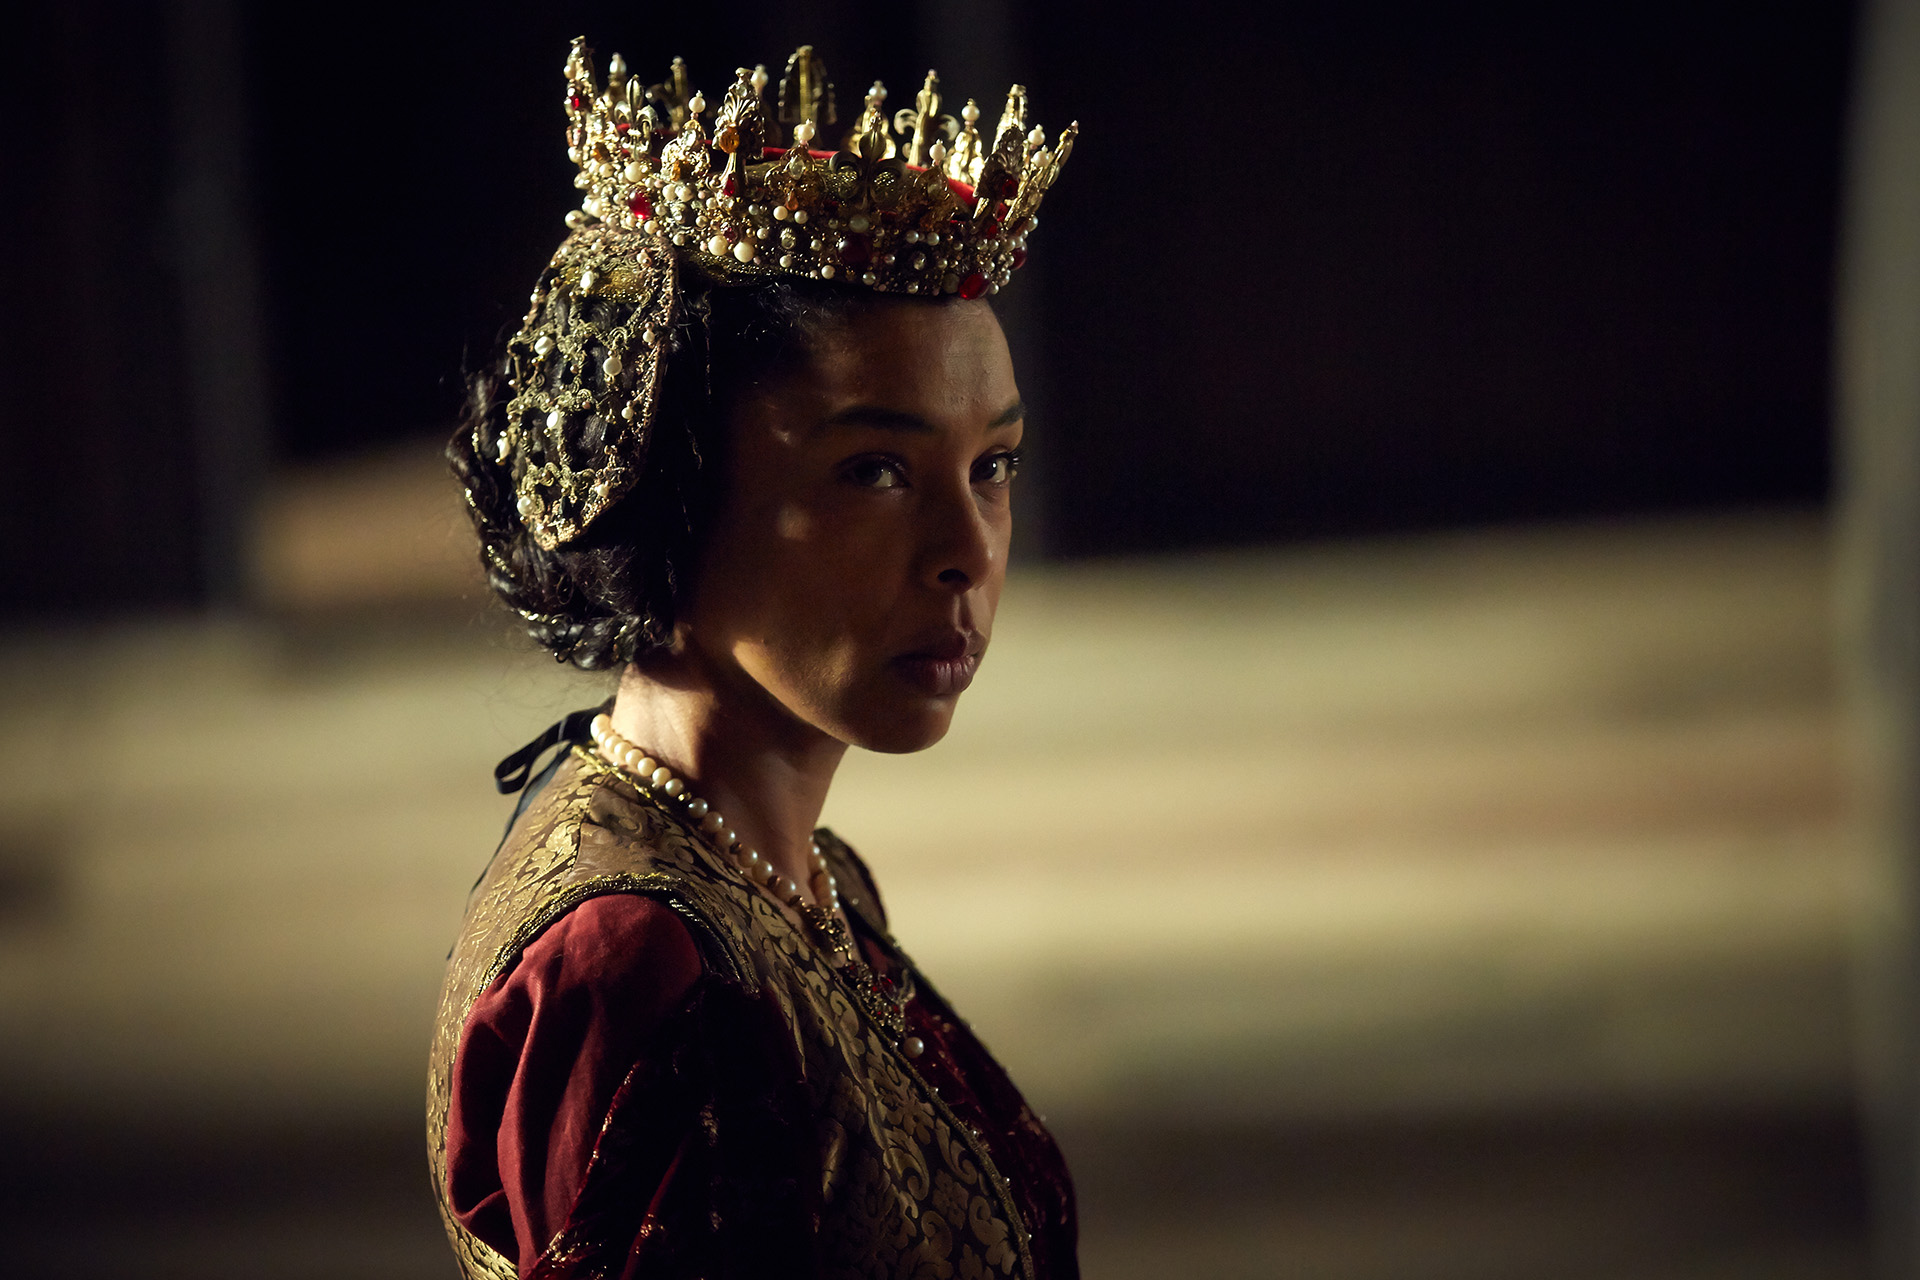 The Hollow Crown: The Wars of the Roses HENRY VI (PART I) Photographer: Robert Viglasky © 2015 Carnival Film & Television Ltd Sophie Okonedo (as MARGARET)